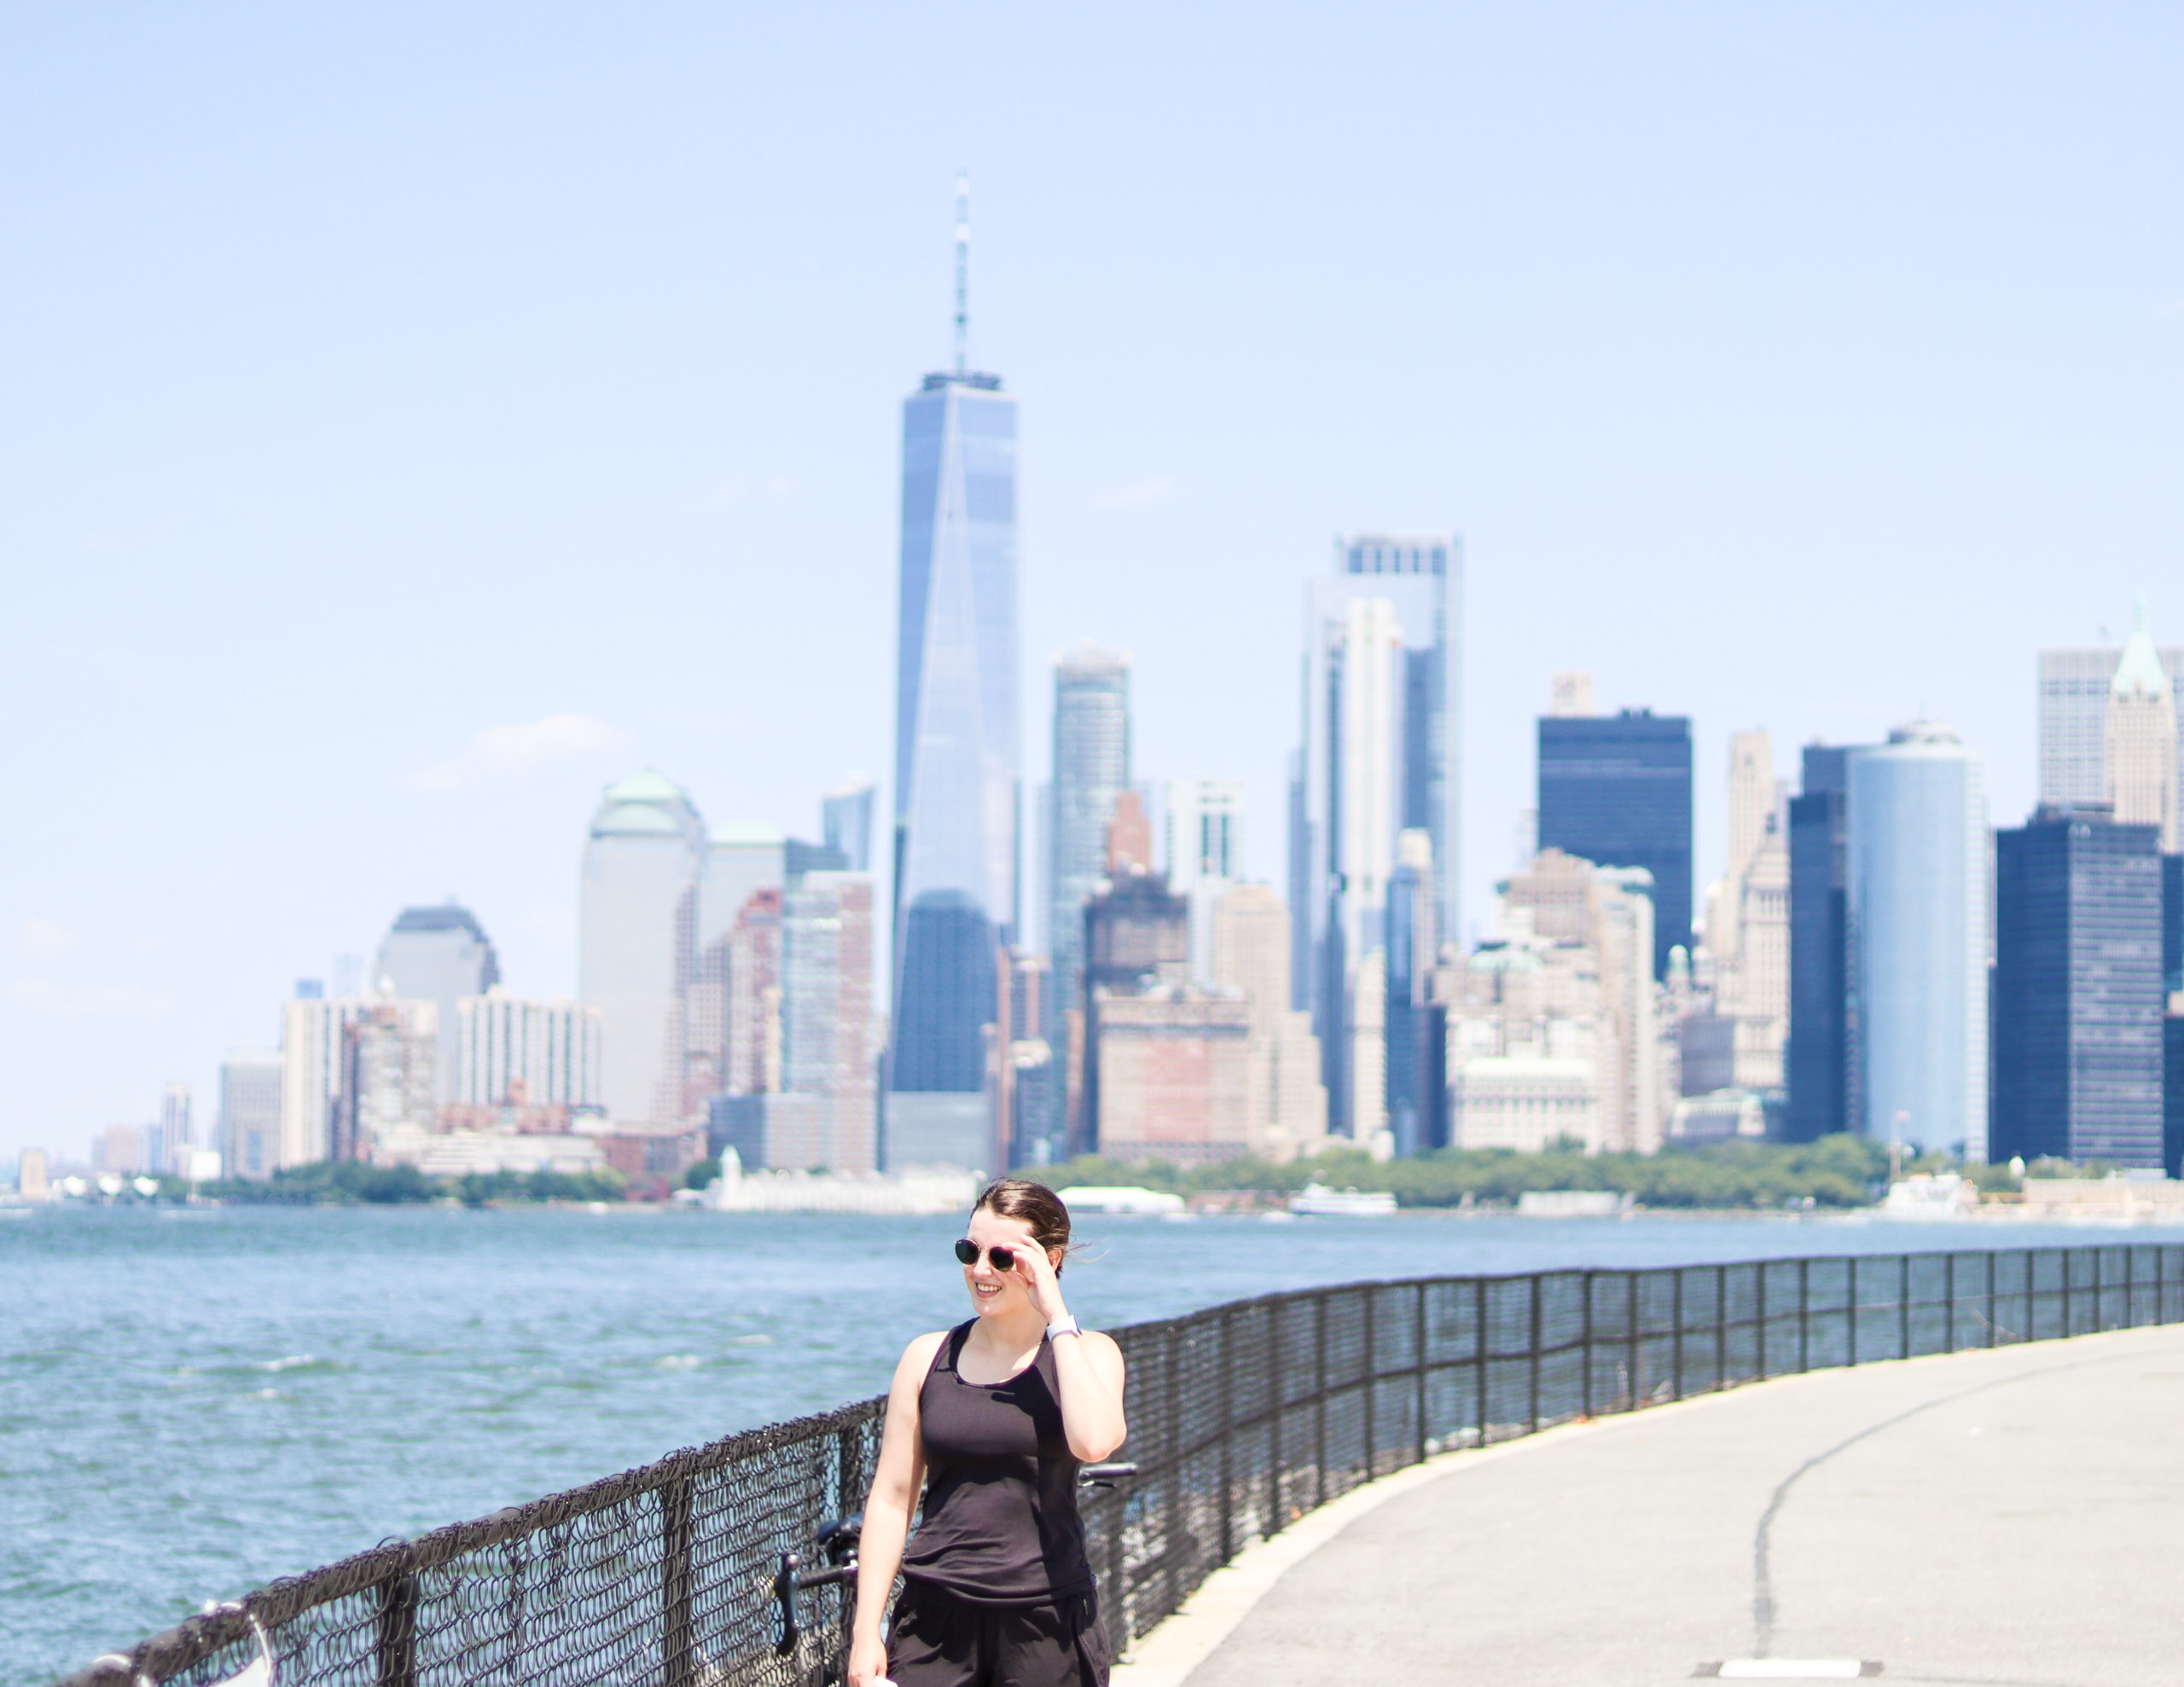 Women standing in walking path on Governors Island